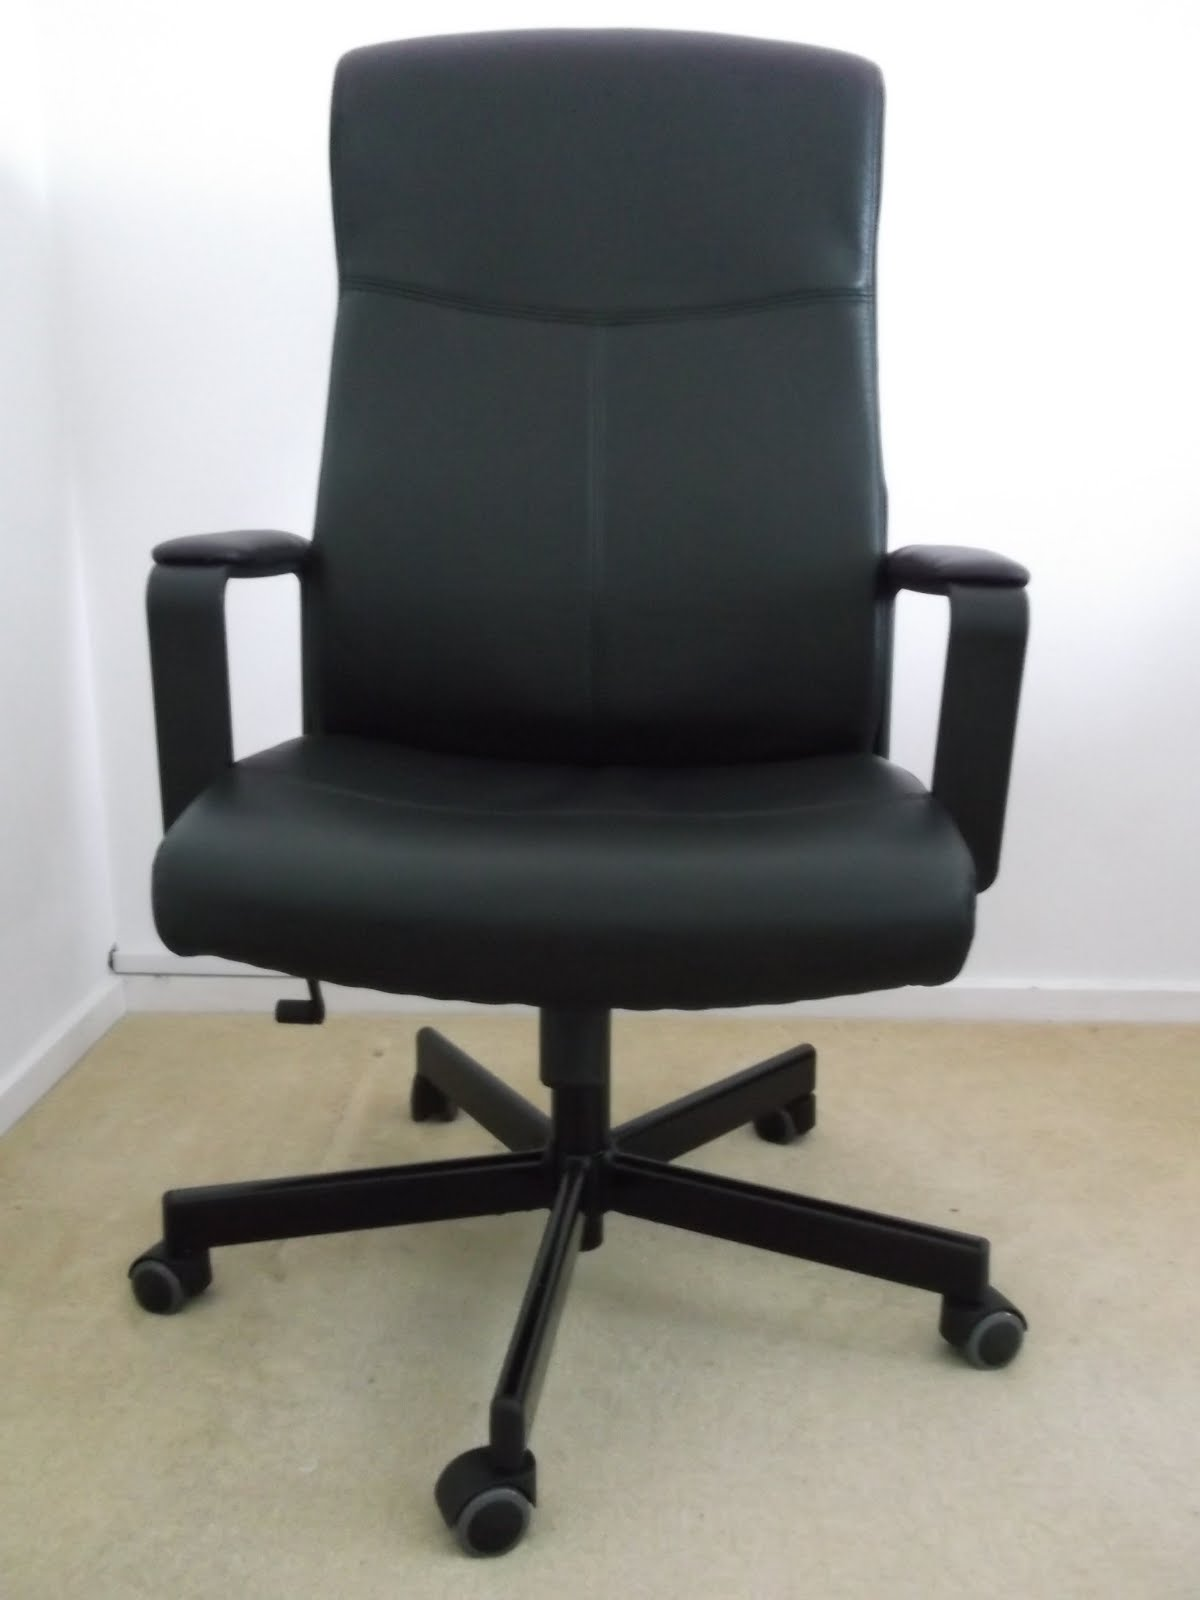 Ikea Swivel Chair Giraffe High Consumer Review Office Malkolm